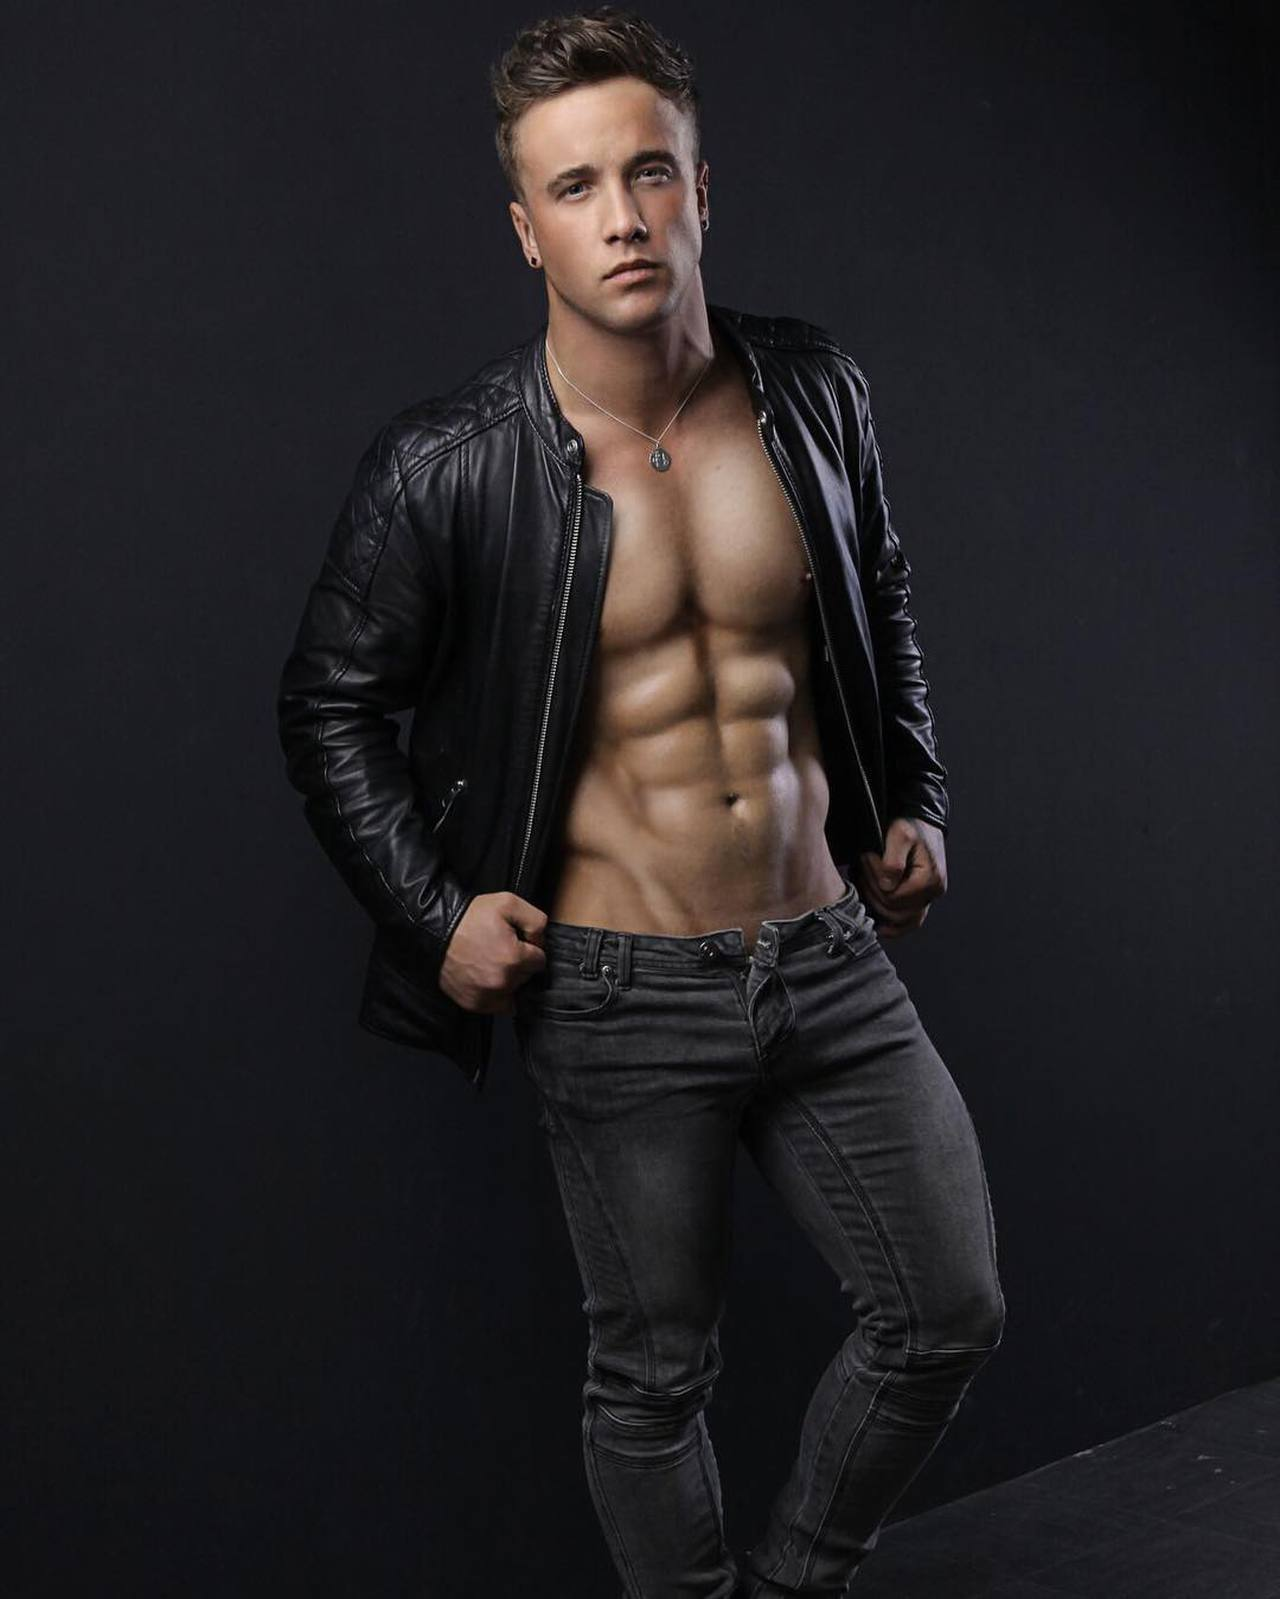 Giulia-Lena Fortuna: Man of the week: Sam Callahan